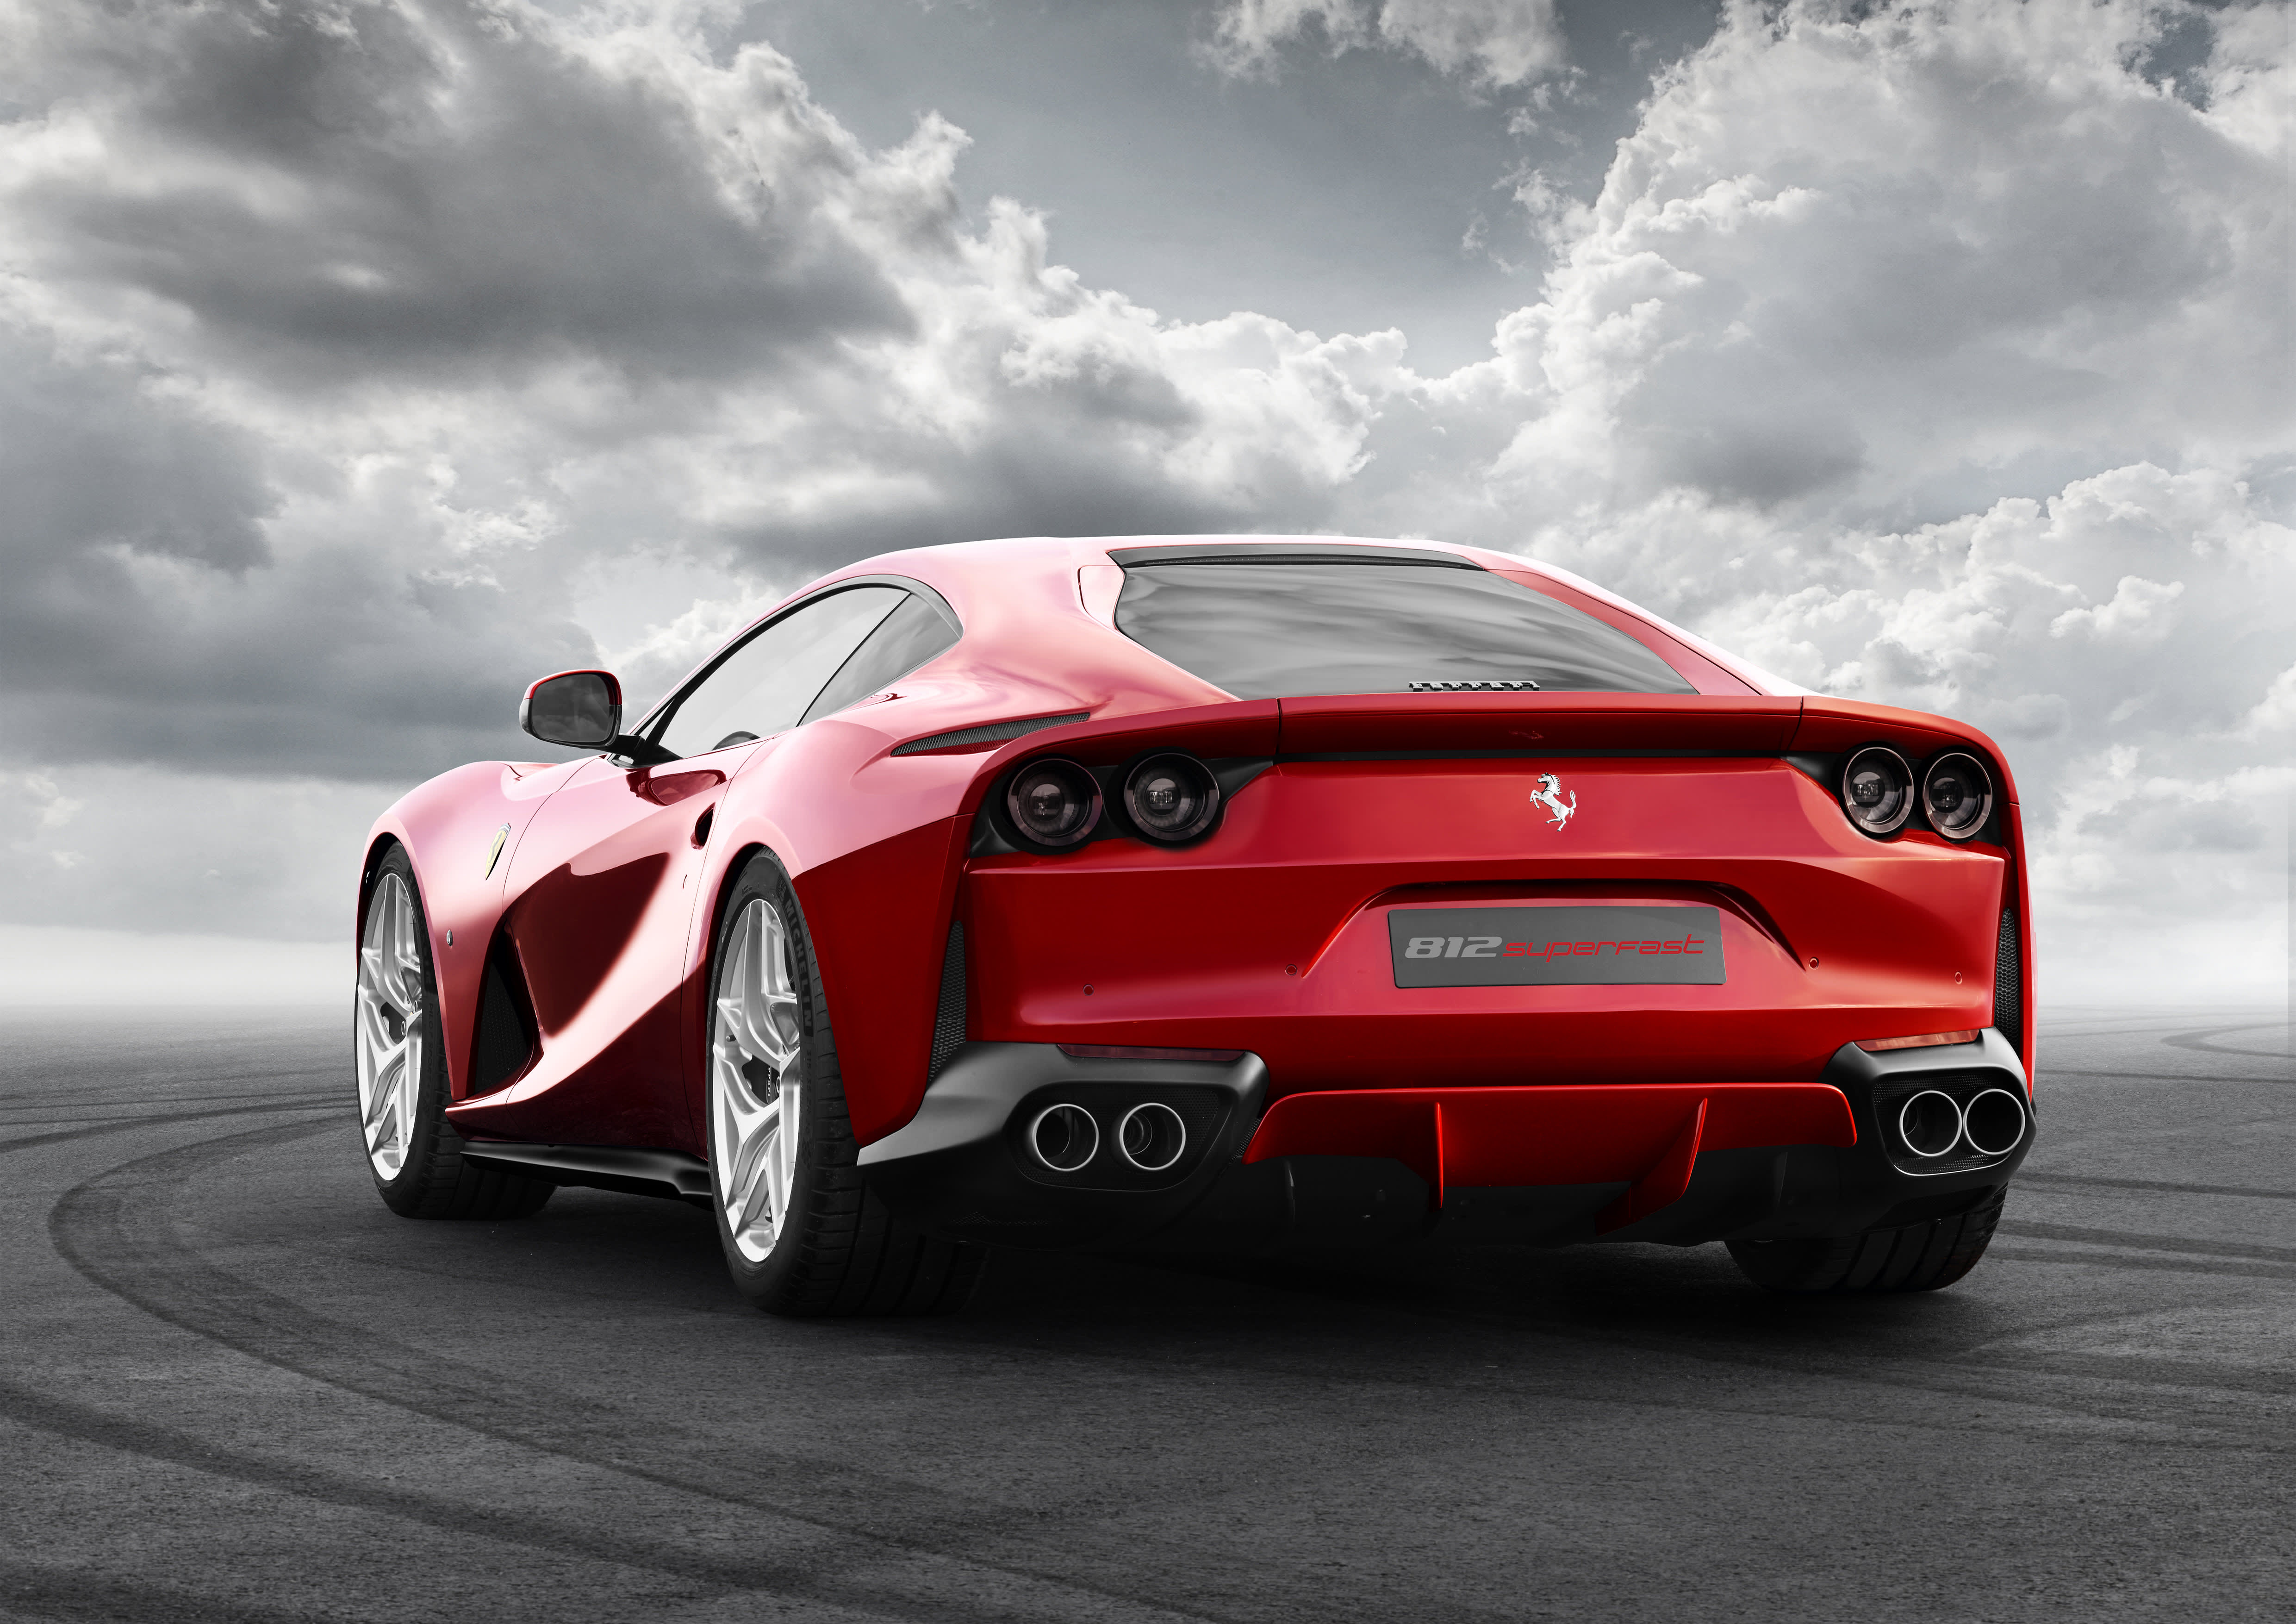 ferrari just unveiled its most powerful production car ever